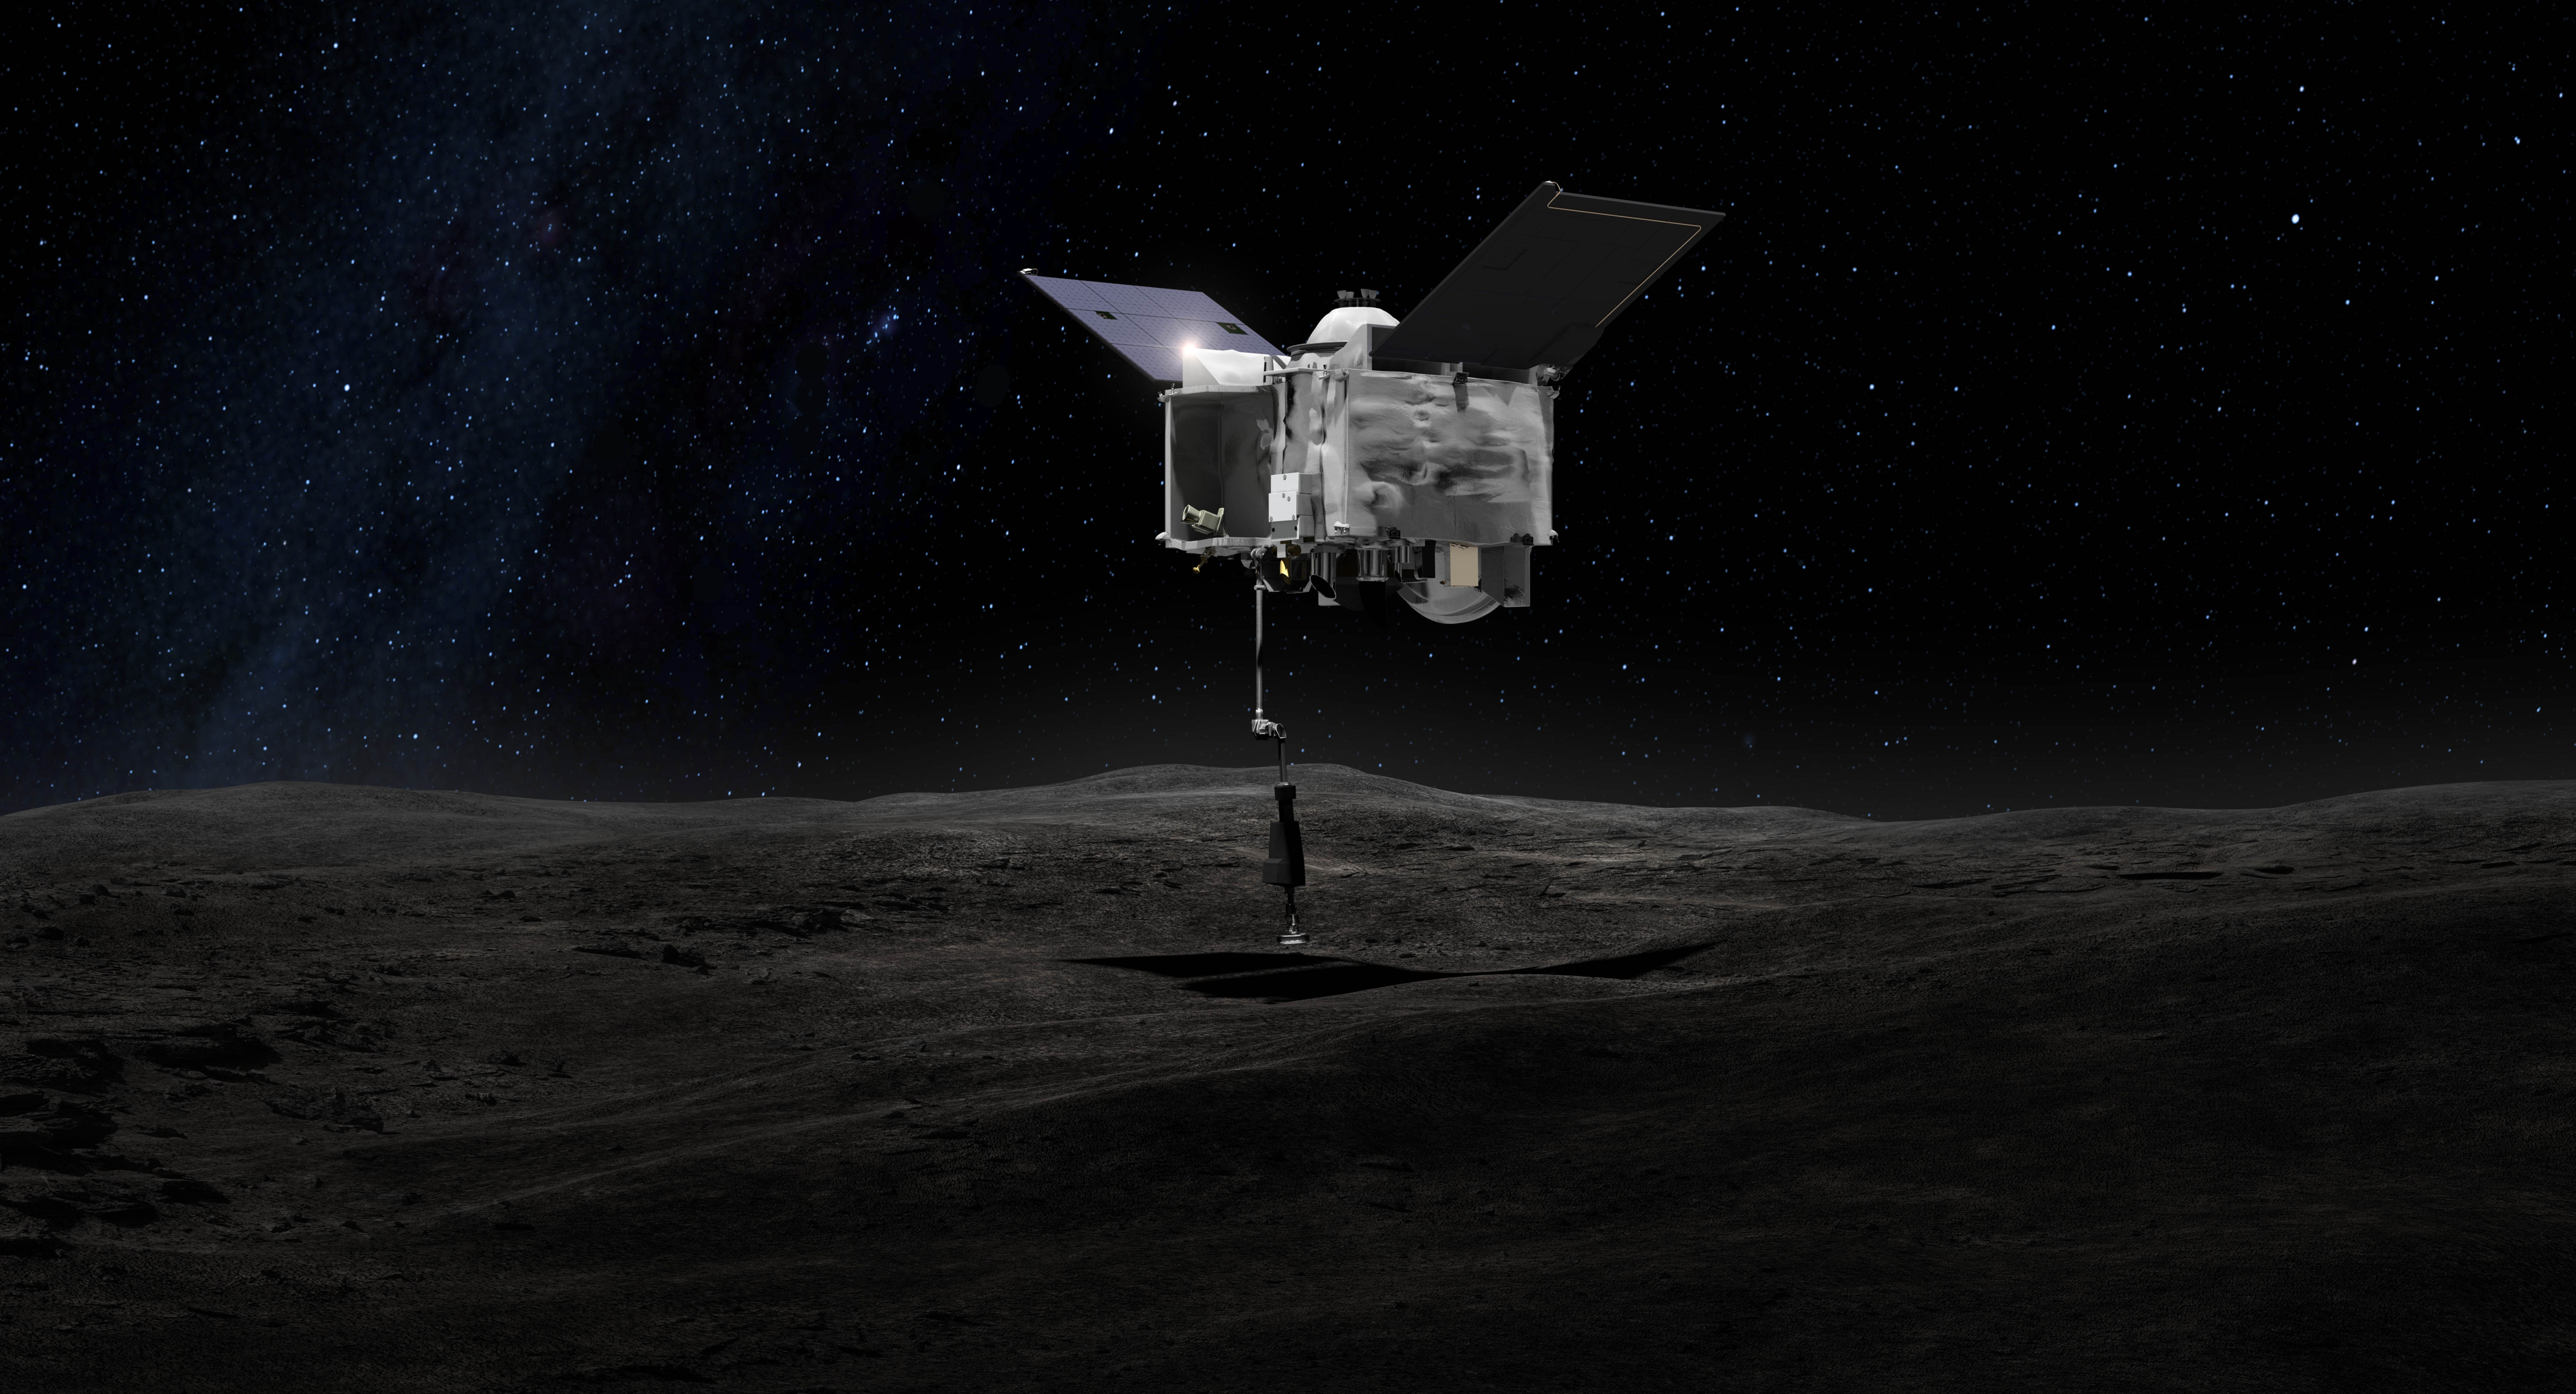 REx finds water on Bennu asteroid within days of arrival